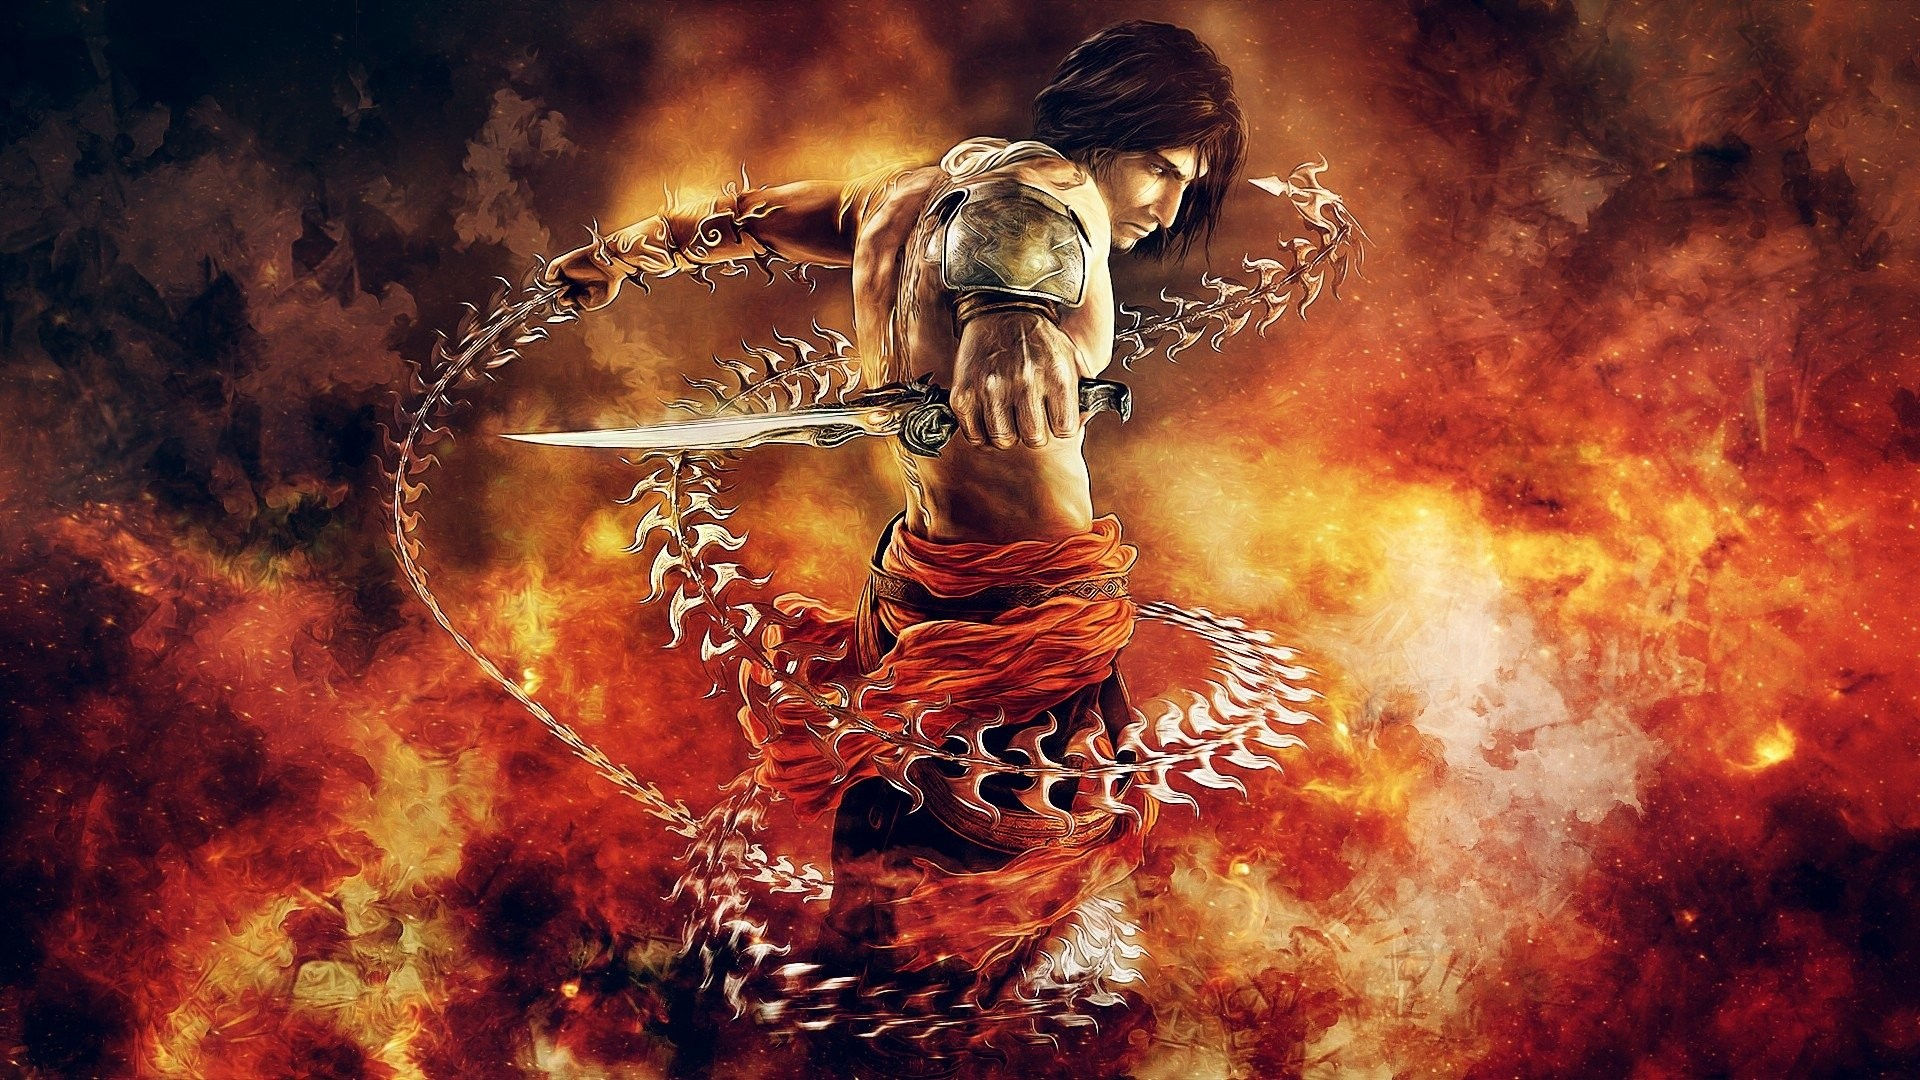 prince of persia game for android mobile free download ...